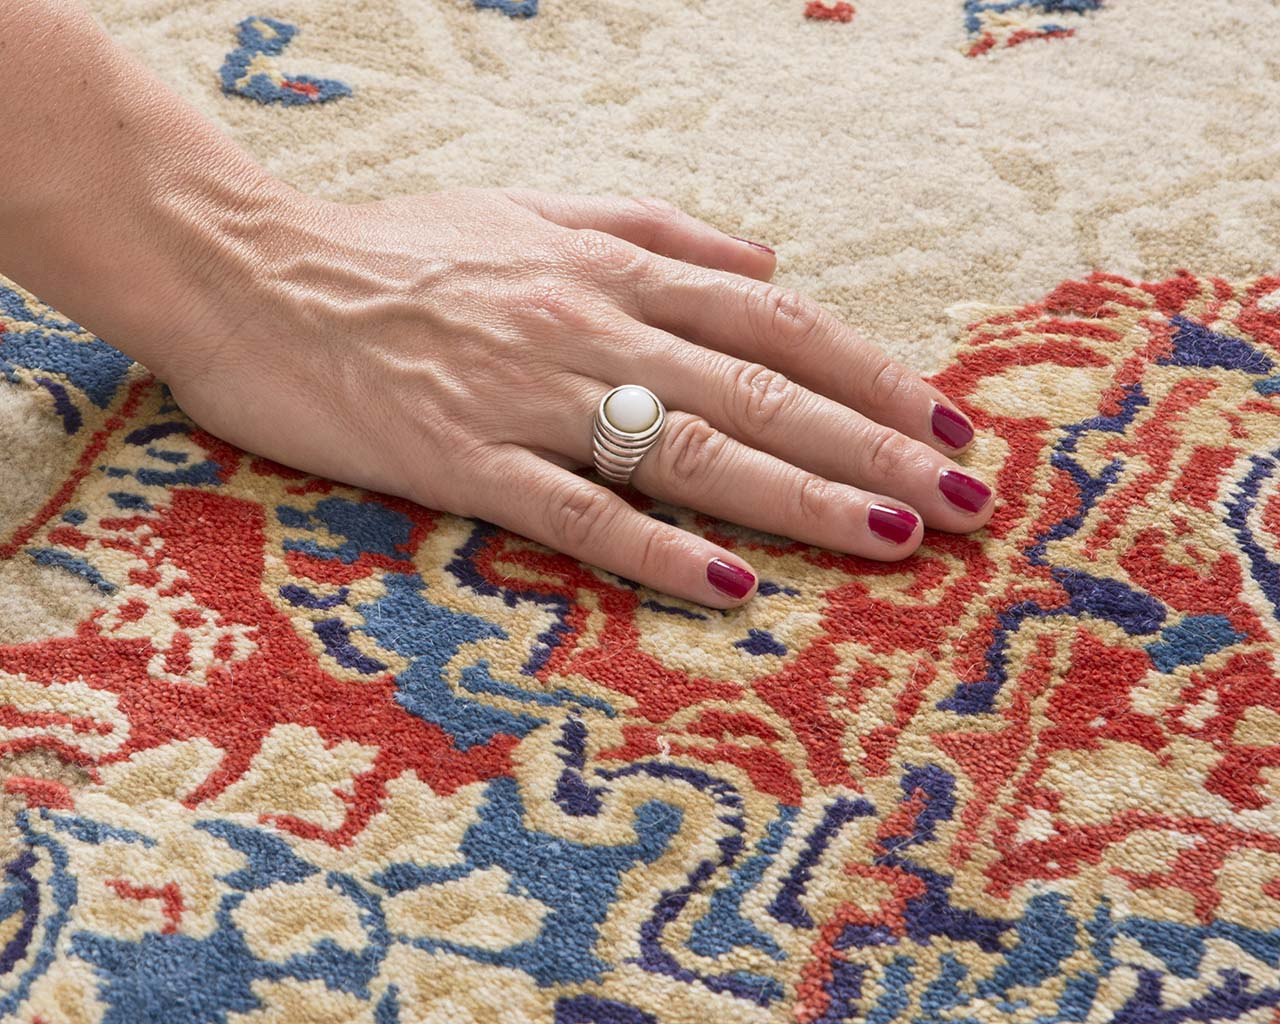 red oriental hand with red nail polish discount rugs online